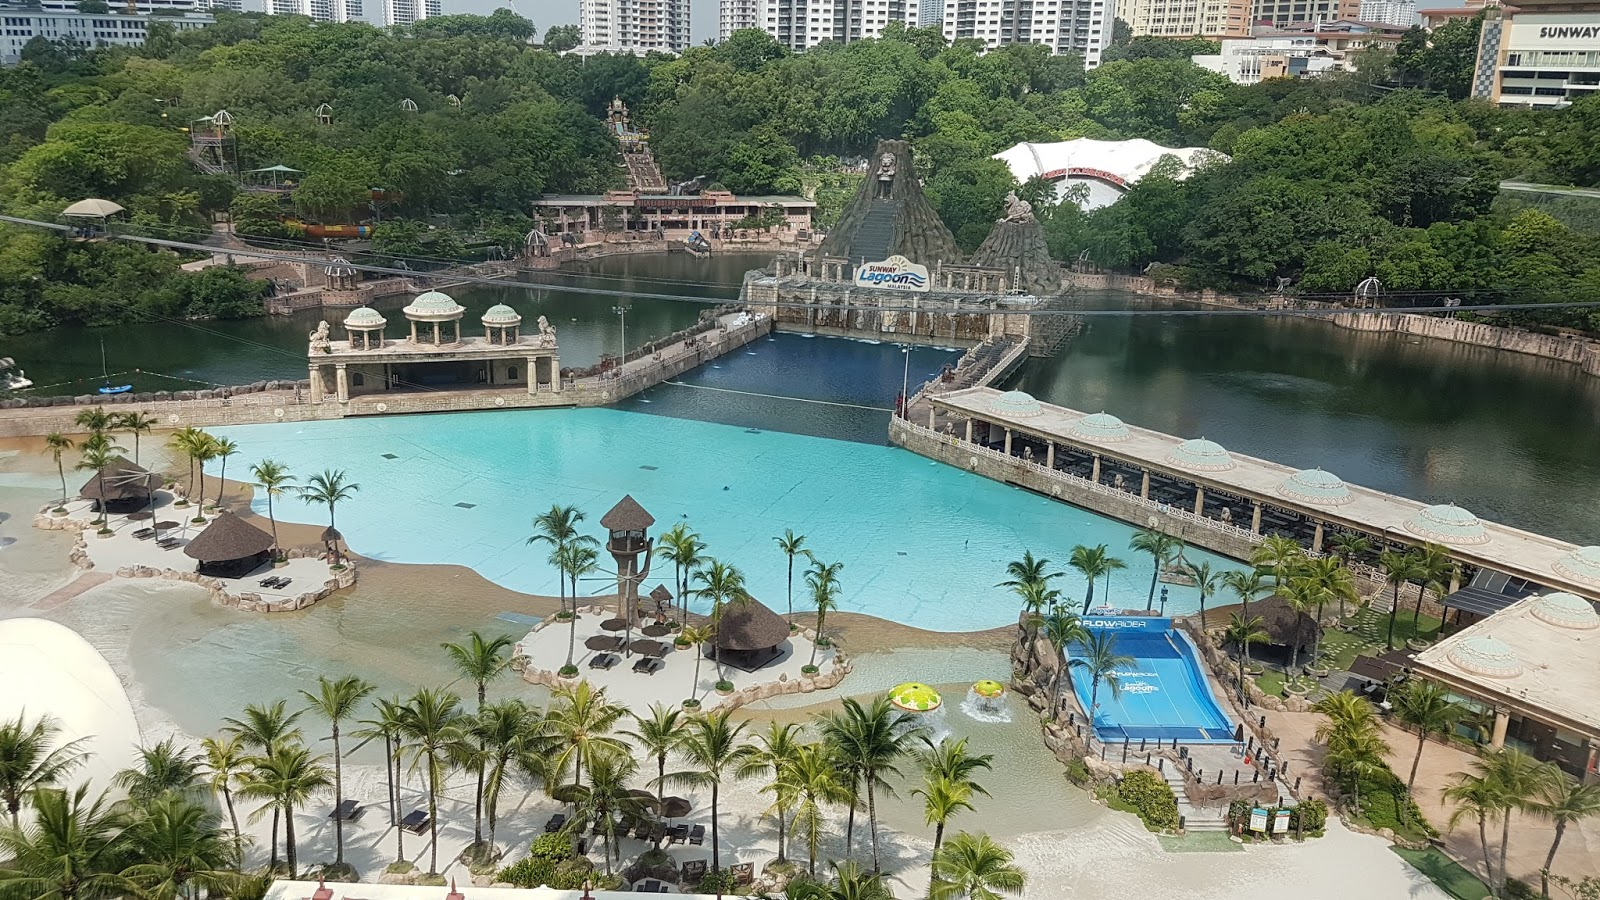 Staycation at sunway resort hotel for Sunway pyramid hotel swimming pool